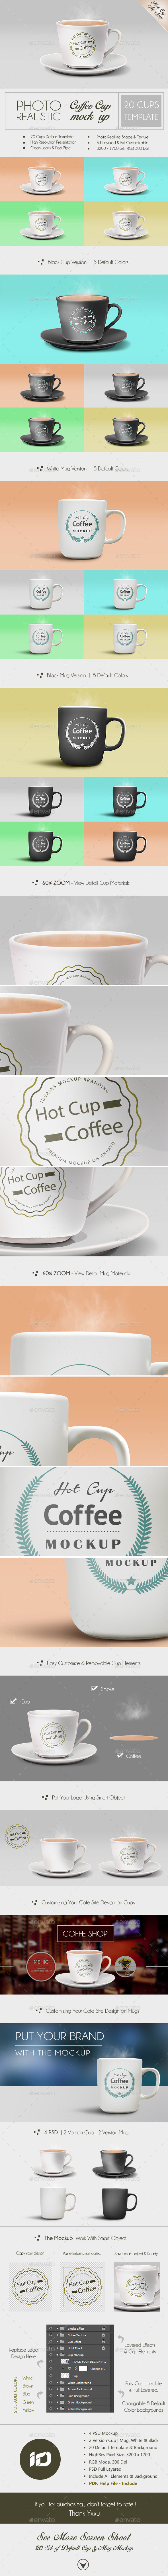 GraphicRiver Coffee Cup Mug Mockup Photorealistic 9004041